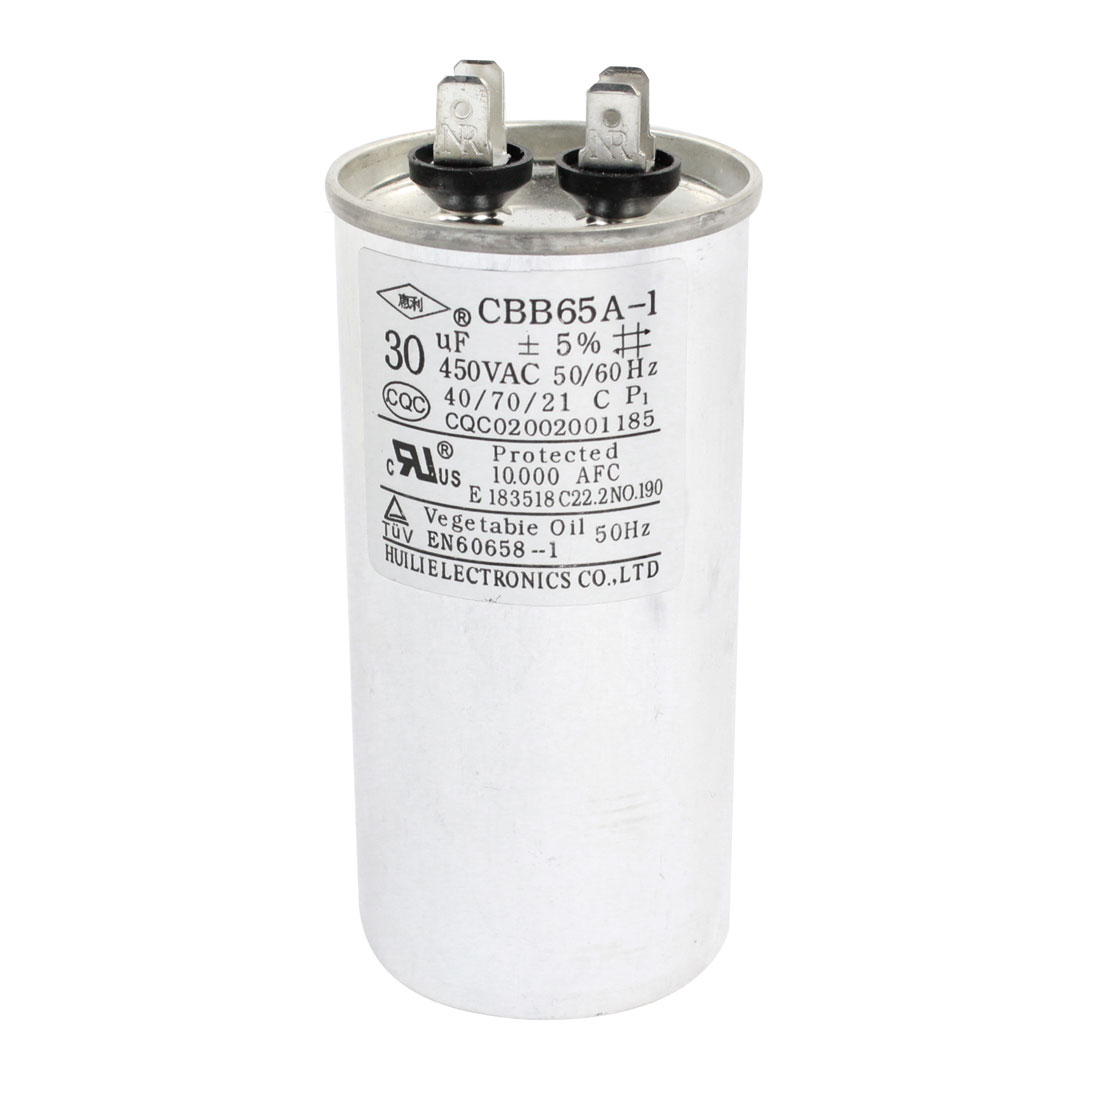 AC 450V 30uF 4 Terminals Cylinder Shaped Air Conditioner Motor Run Capacitor CBB65A-1 Silver Tone